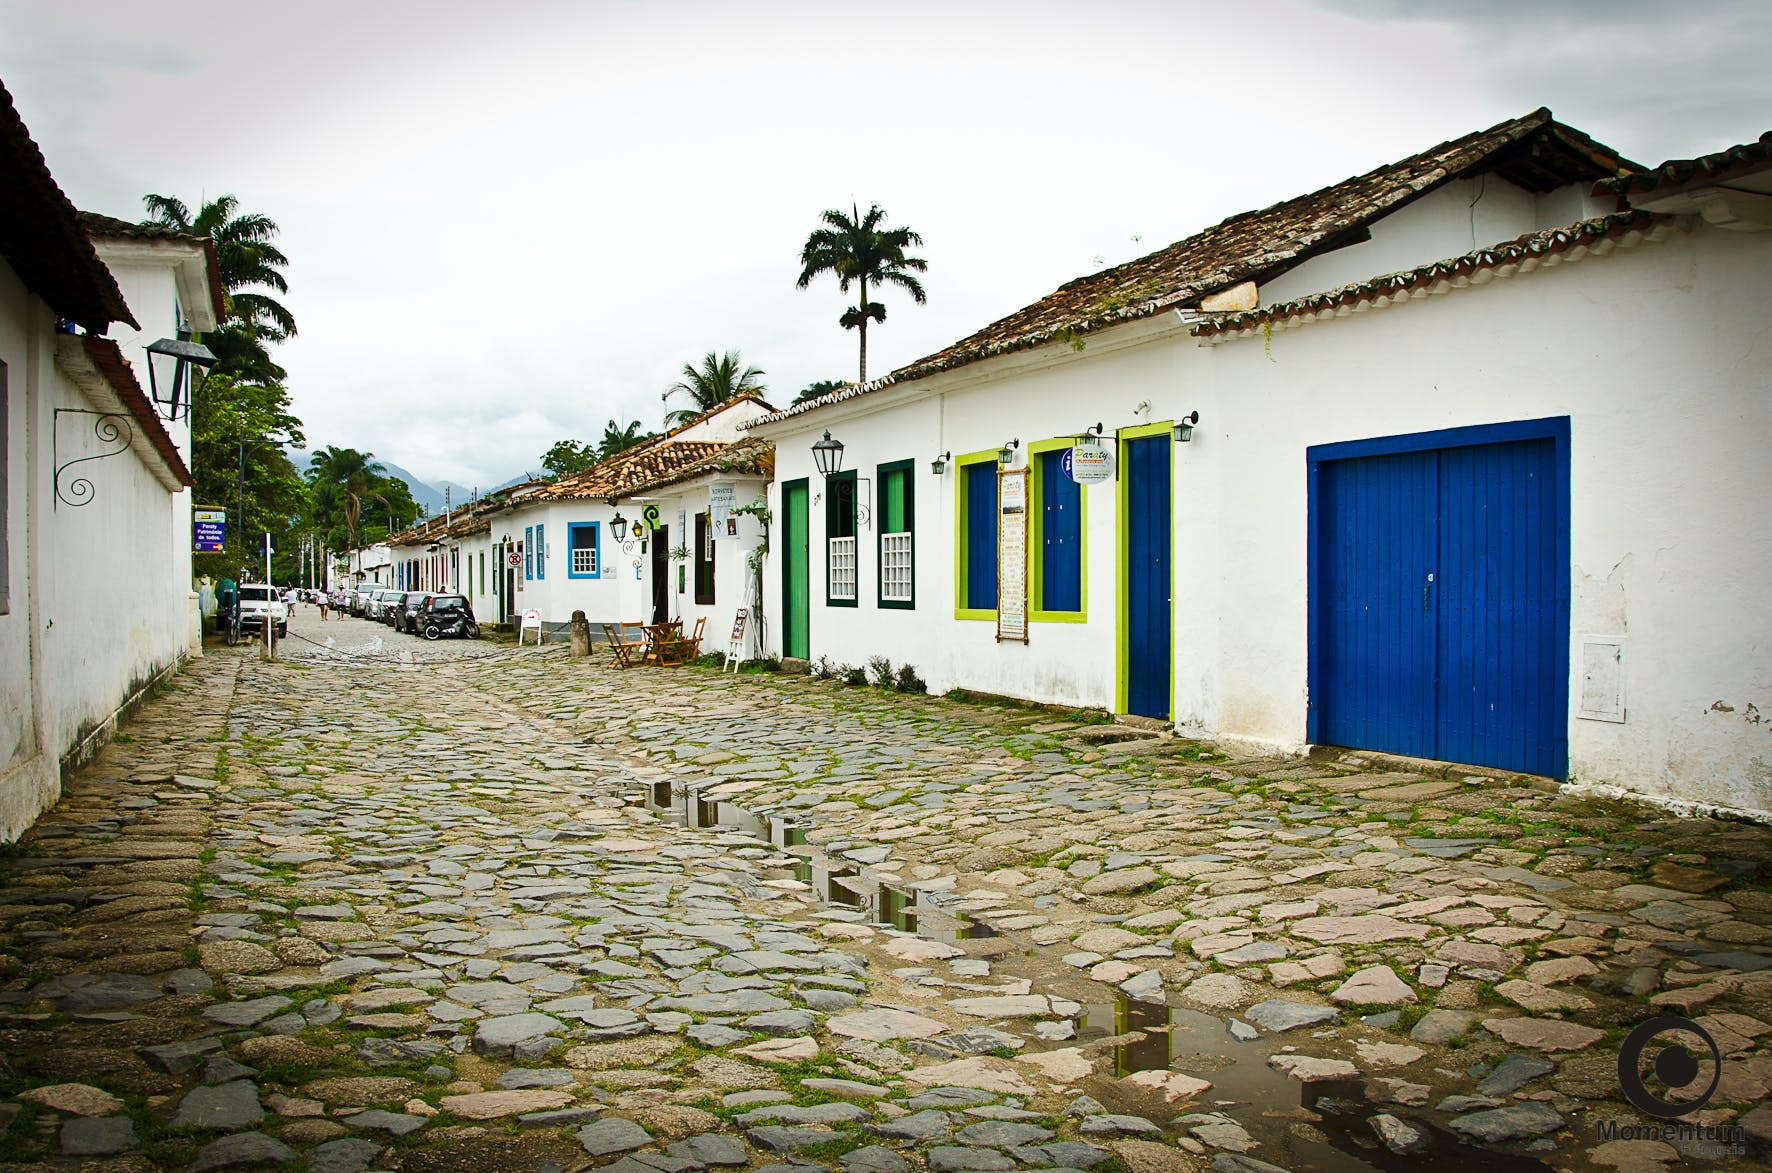 Free stock photo of Paraty old street